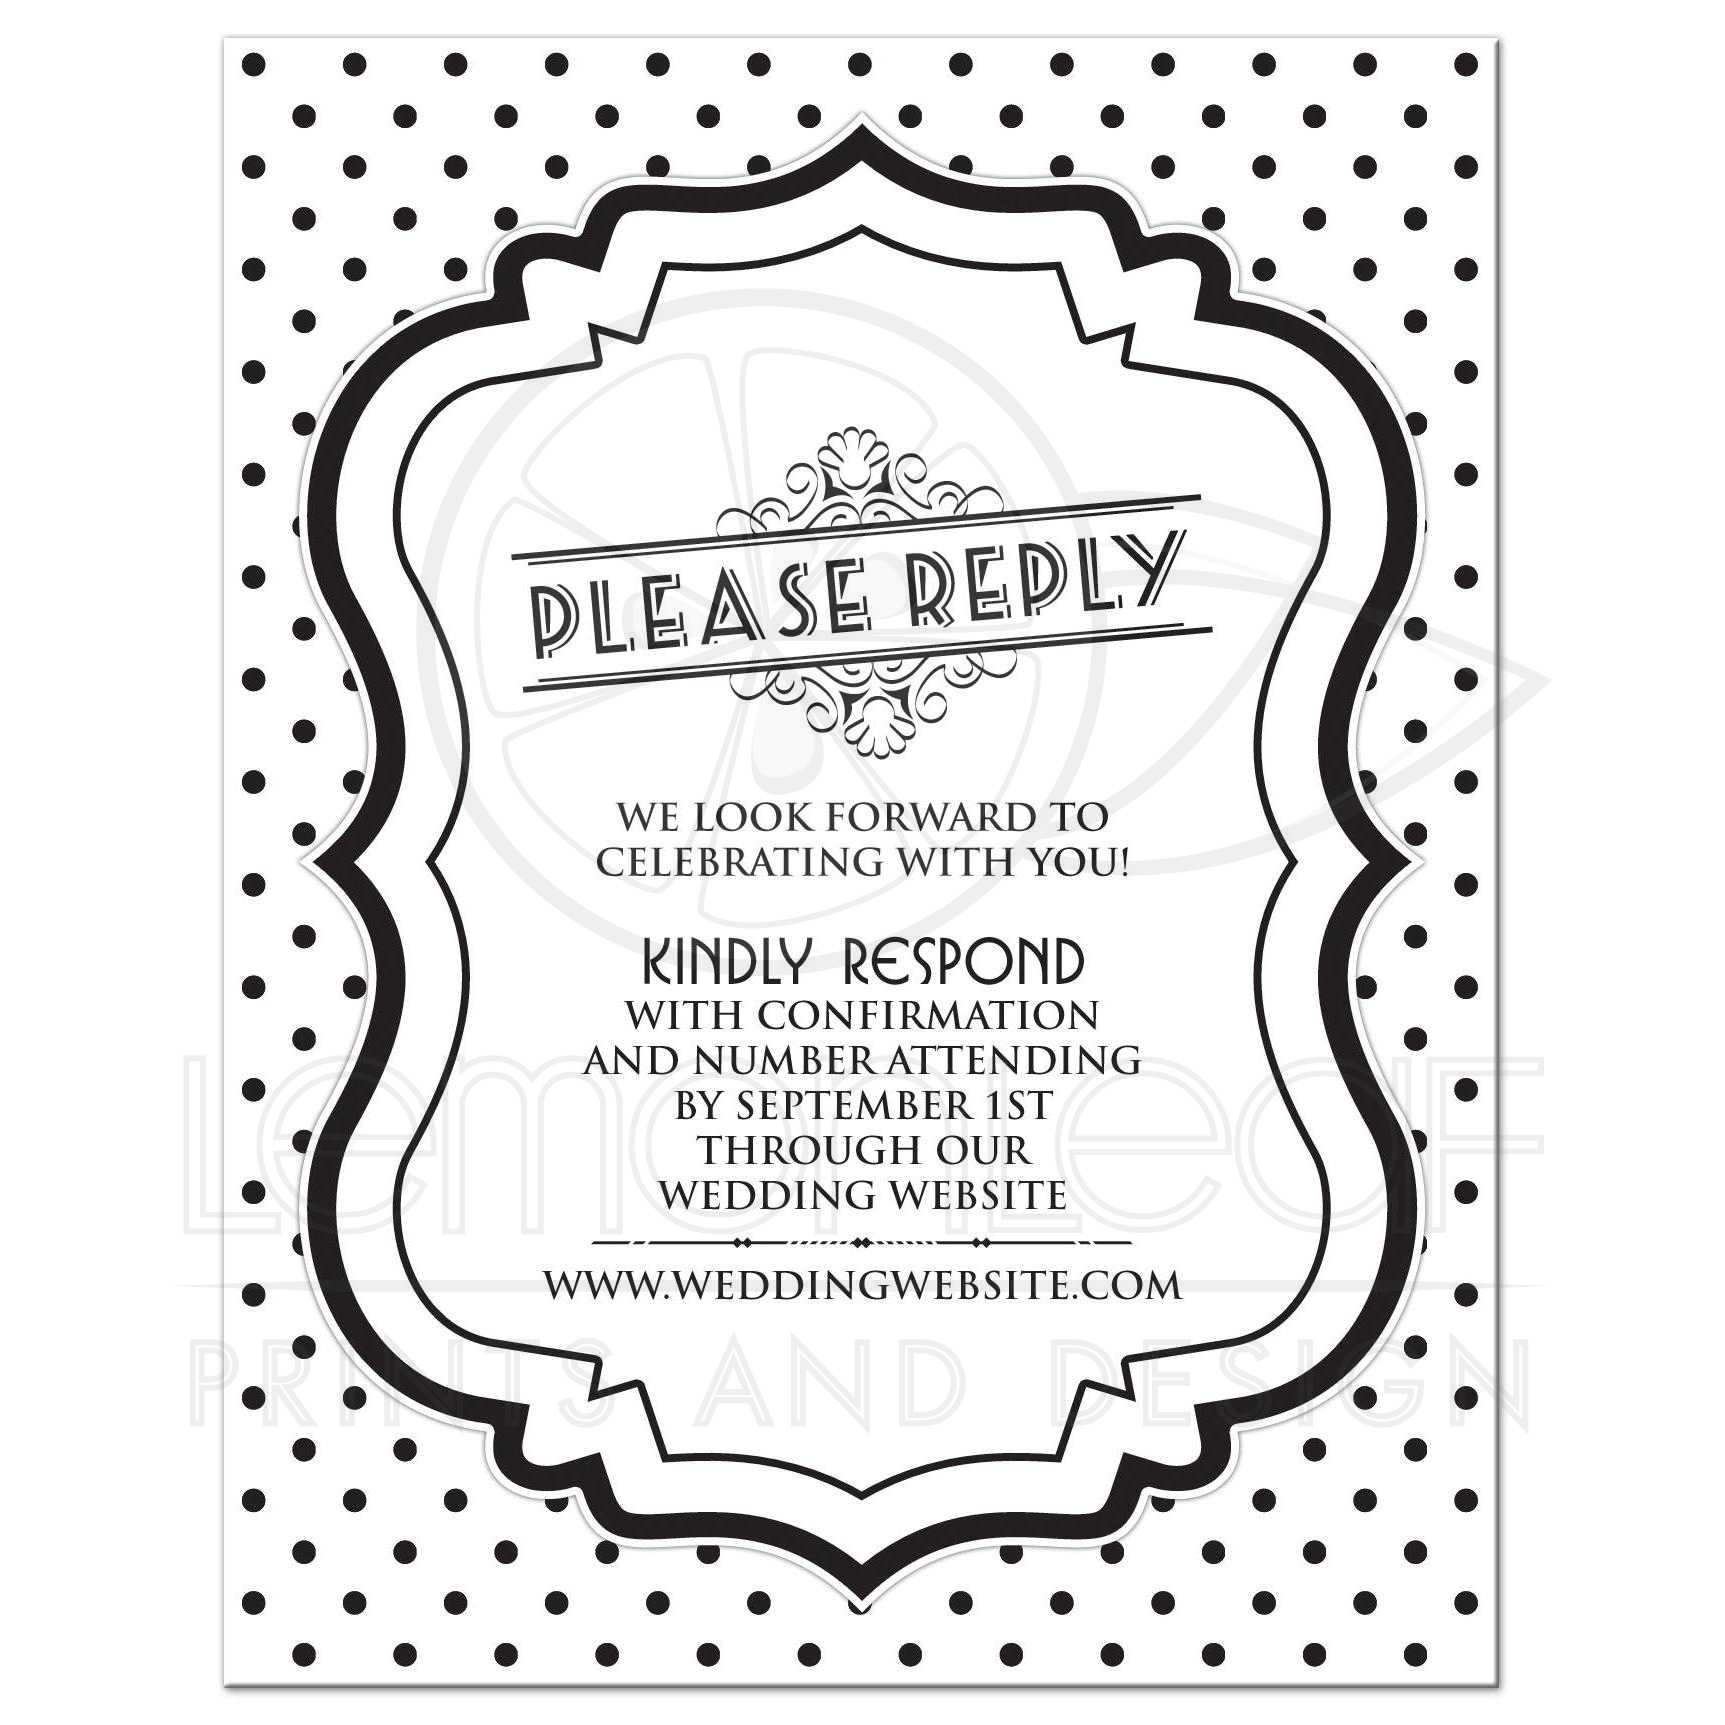 Wedding Website RSVP Retro 50s Black White Polka Dot